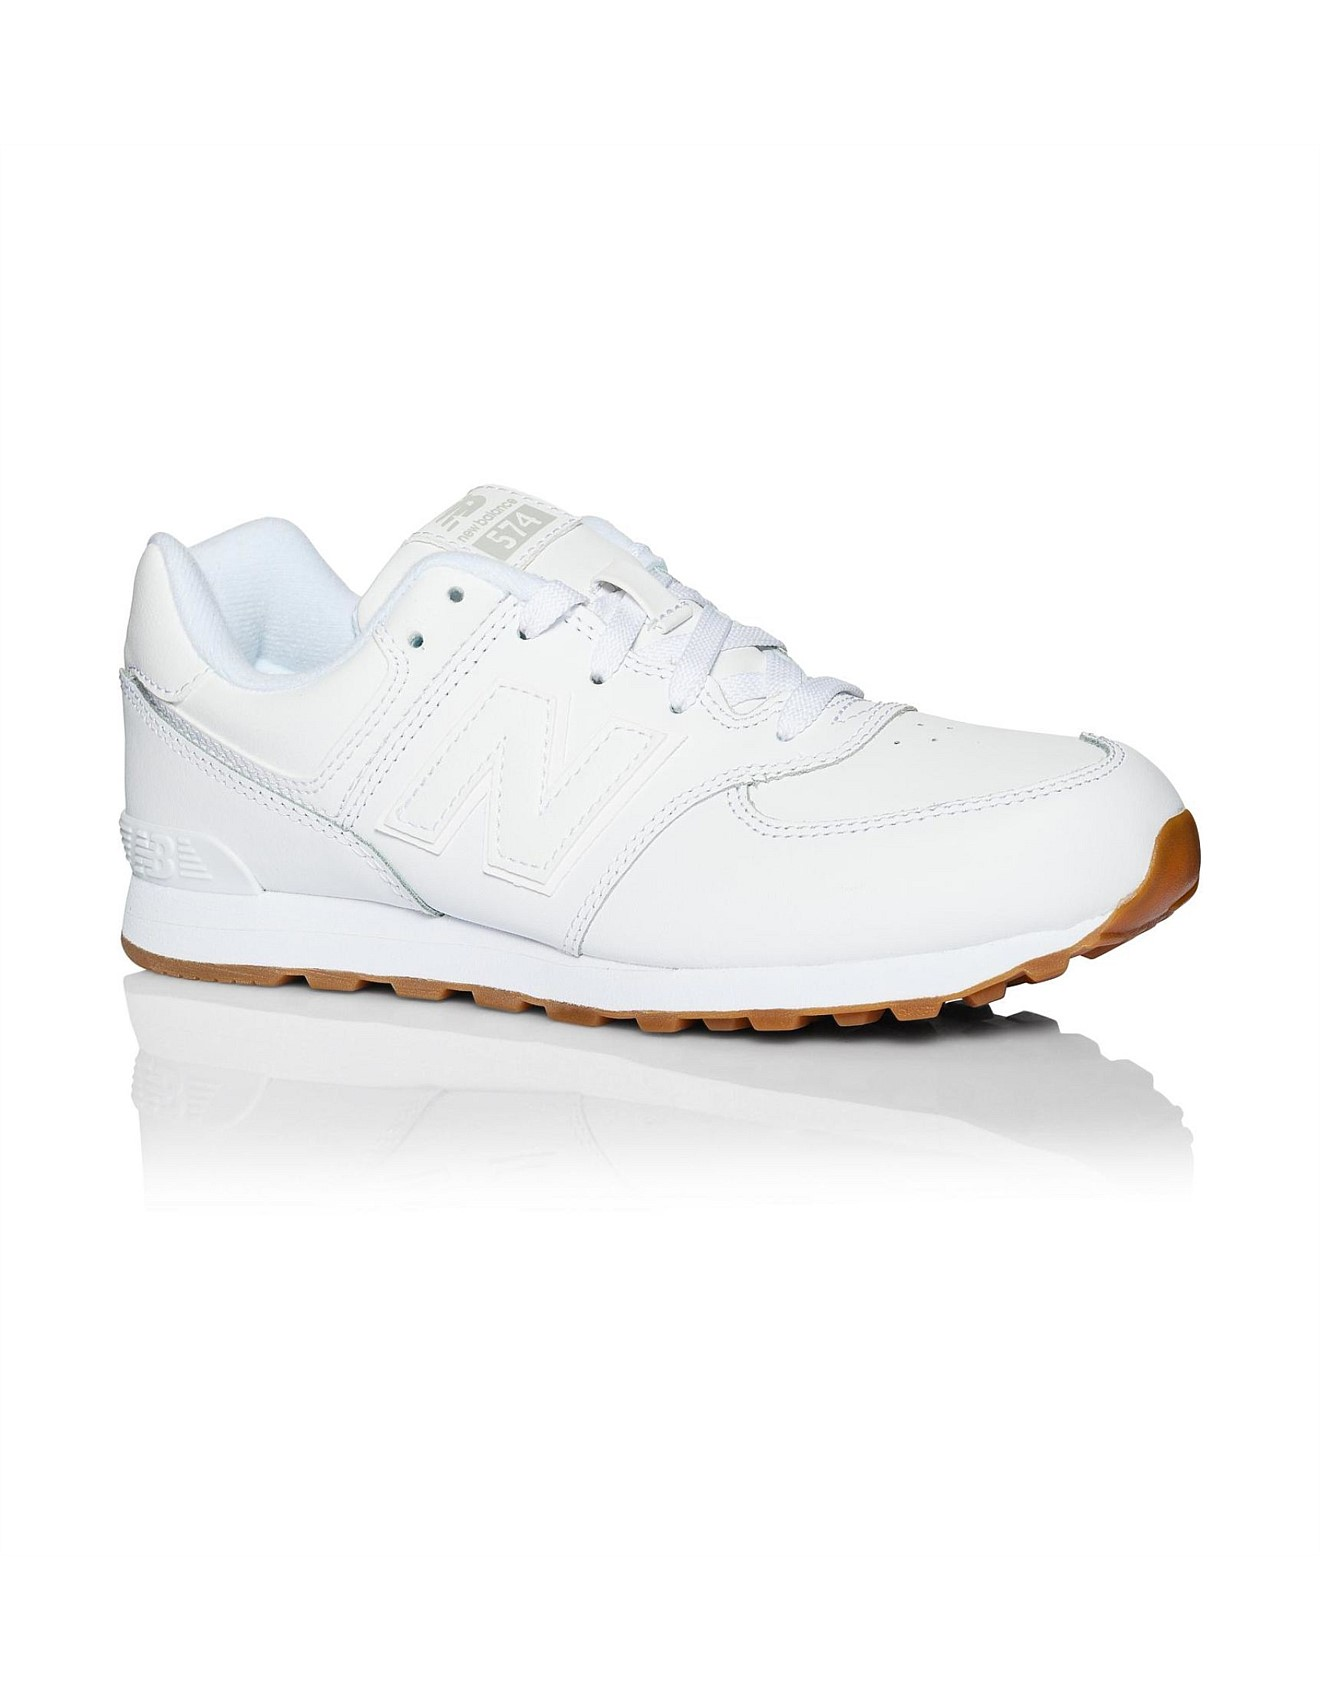 edc0b041d55ff Kl574g8p/G Athletic Laceup Leather Trainer